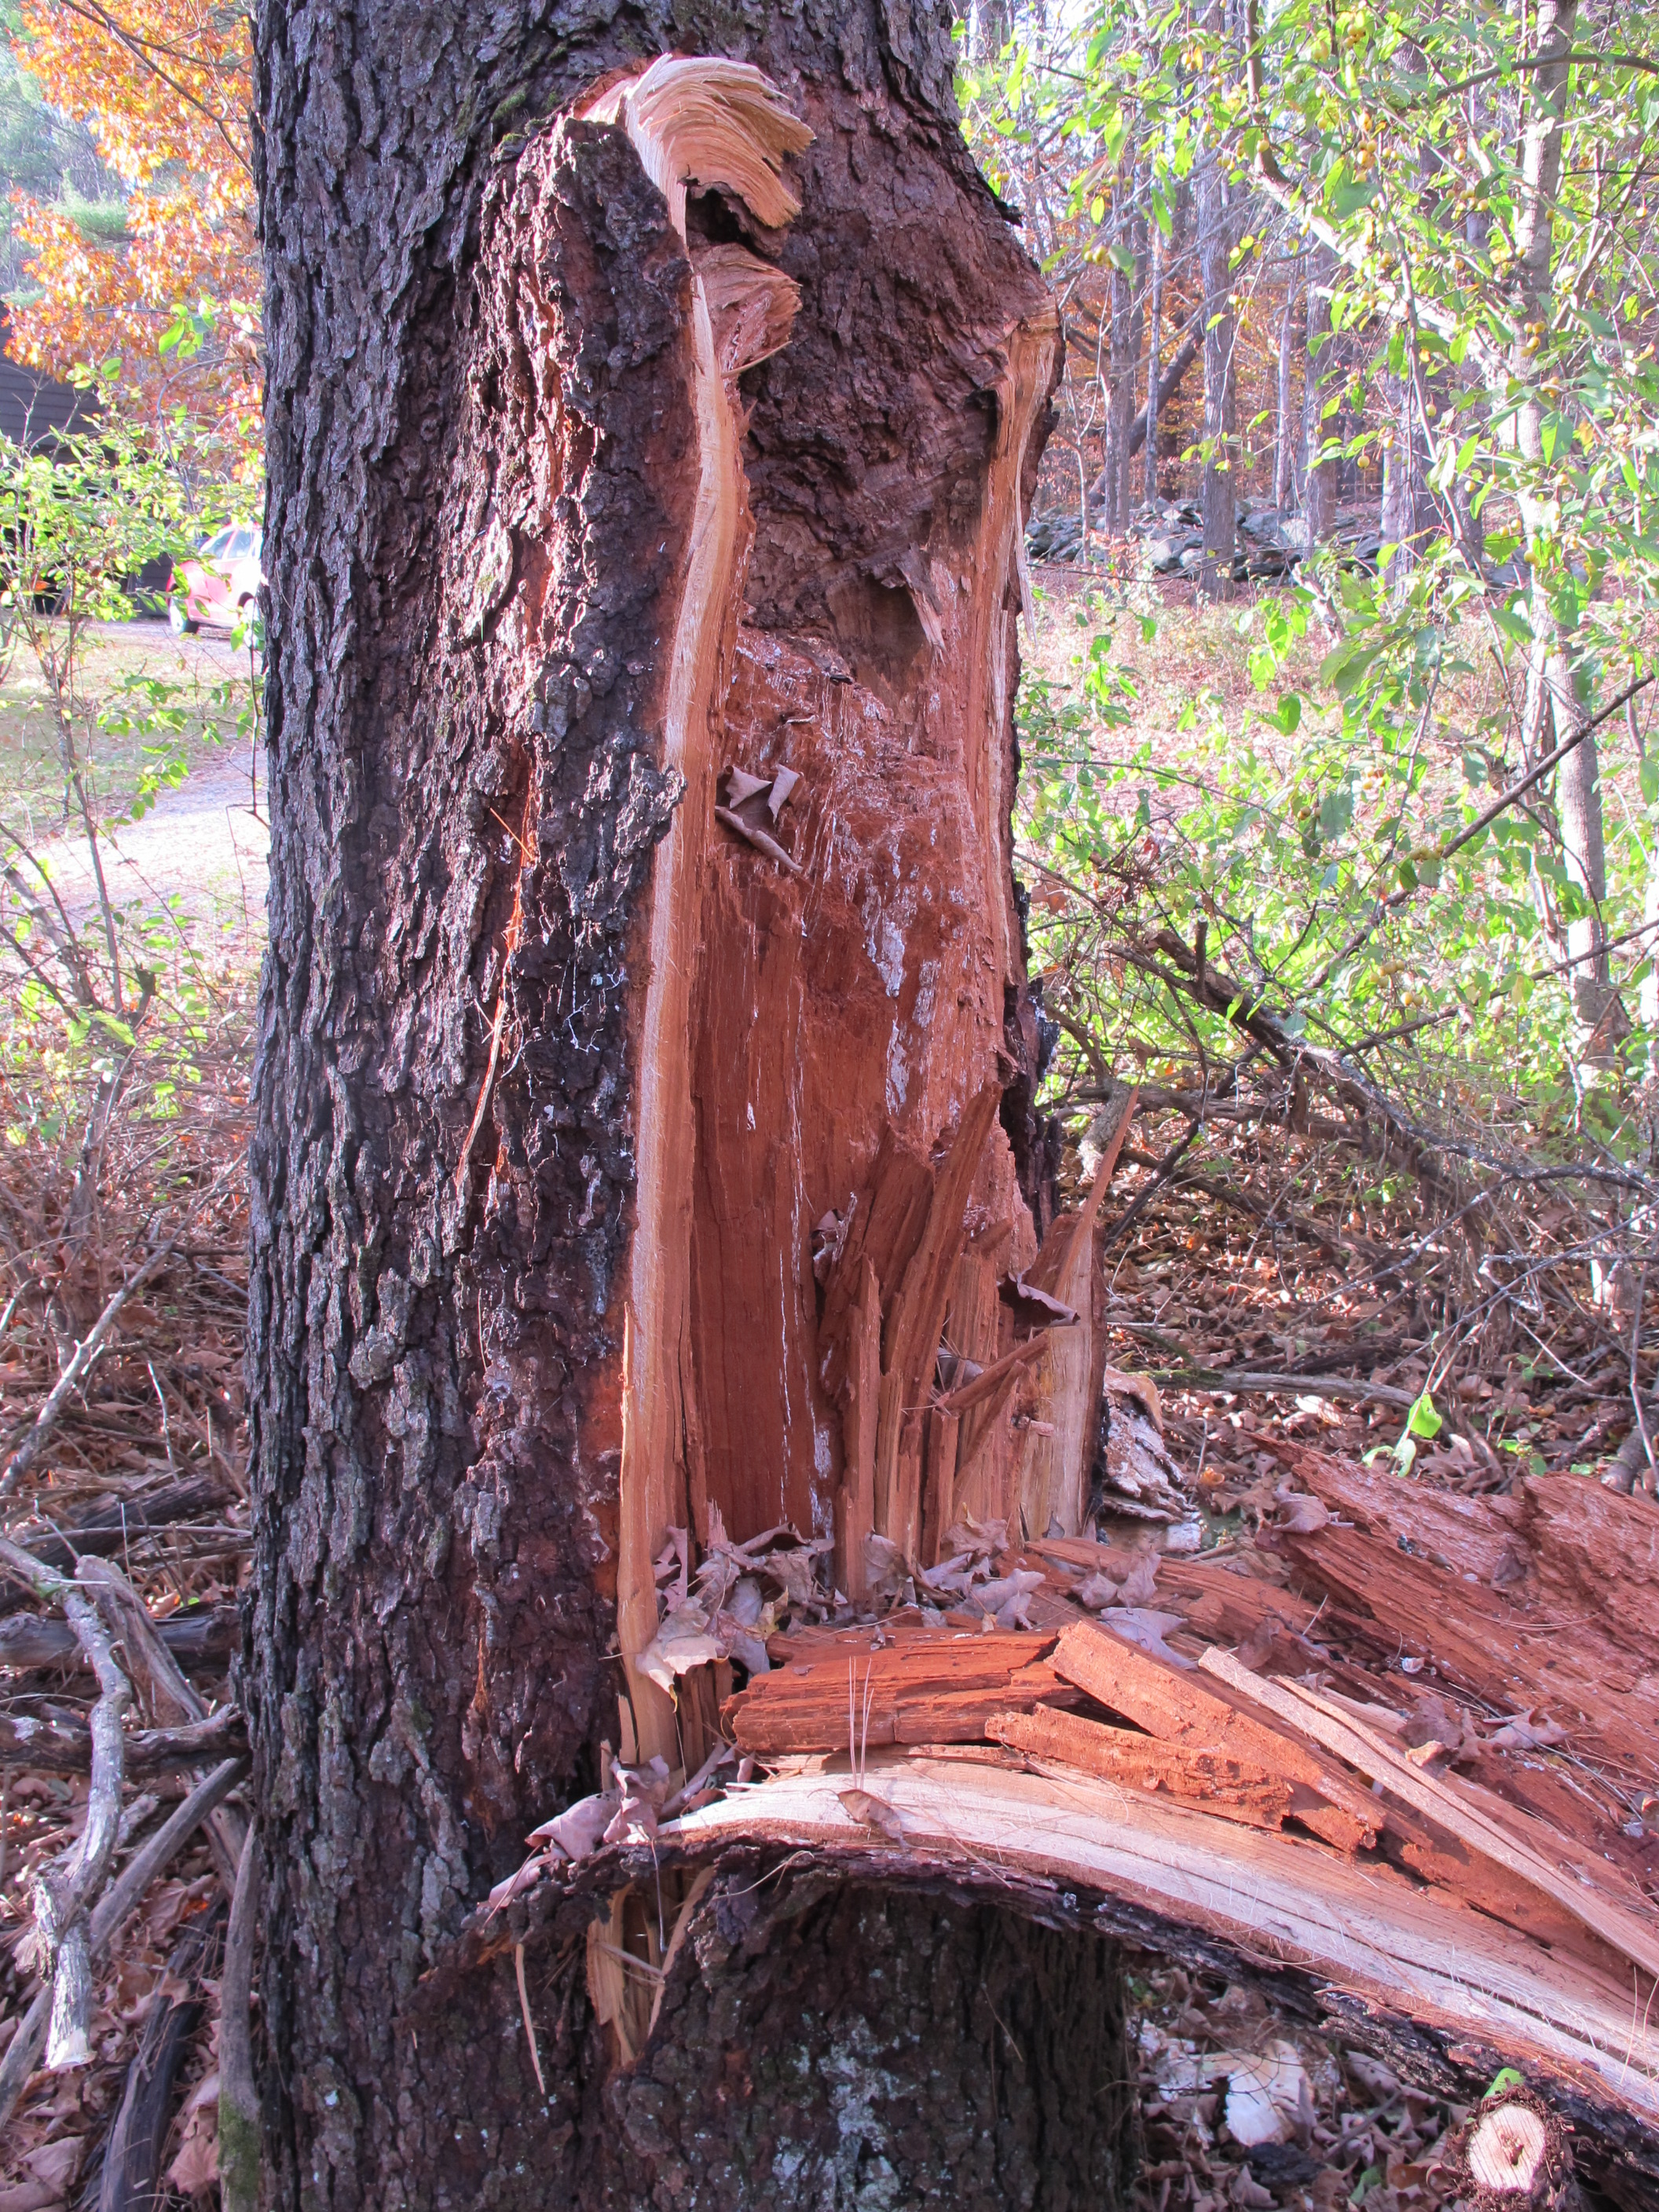 Comfy Cherry Tree Split Due To Included Bark Cherry Tree Split Bark Henry Homr Cherry Tree Bark Repair Cherry Tree Bark Tea houzz 01 Cherry Tree Bark